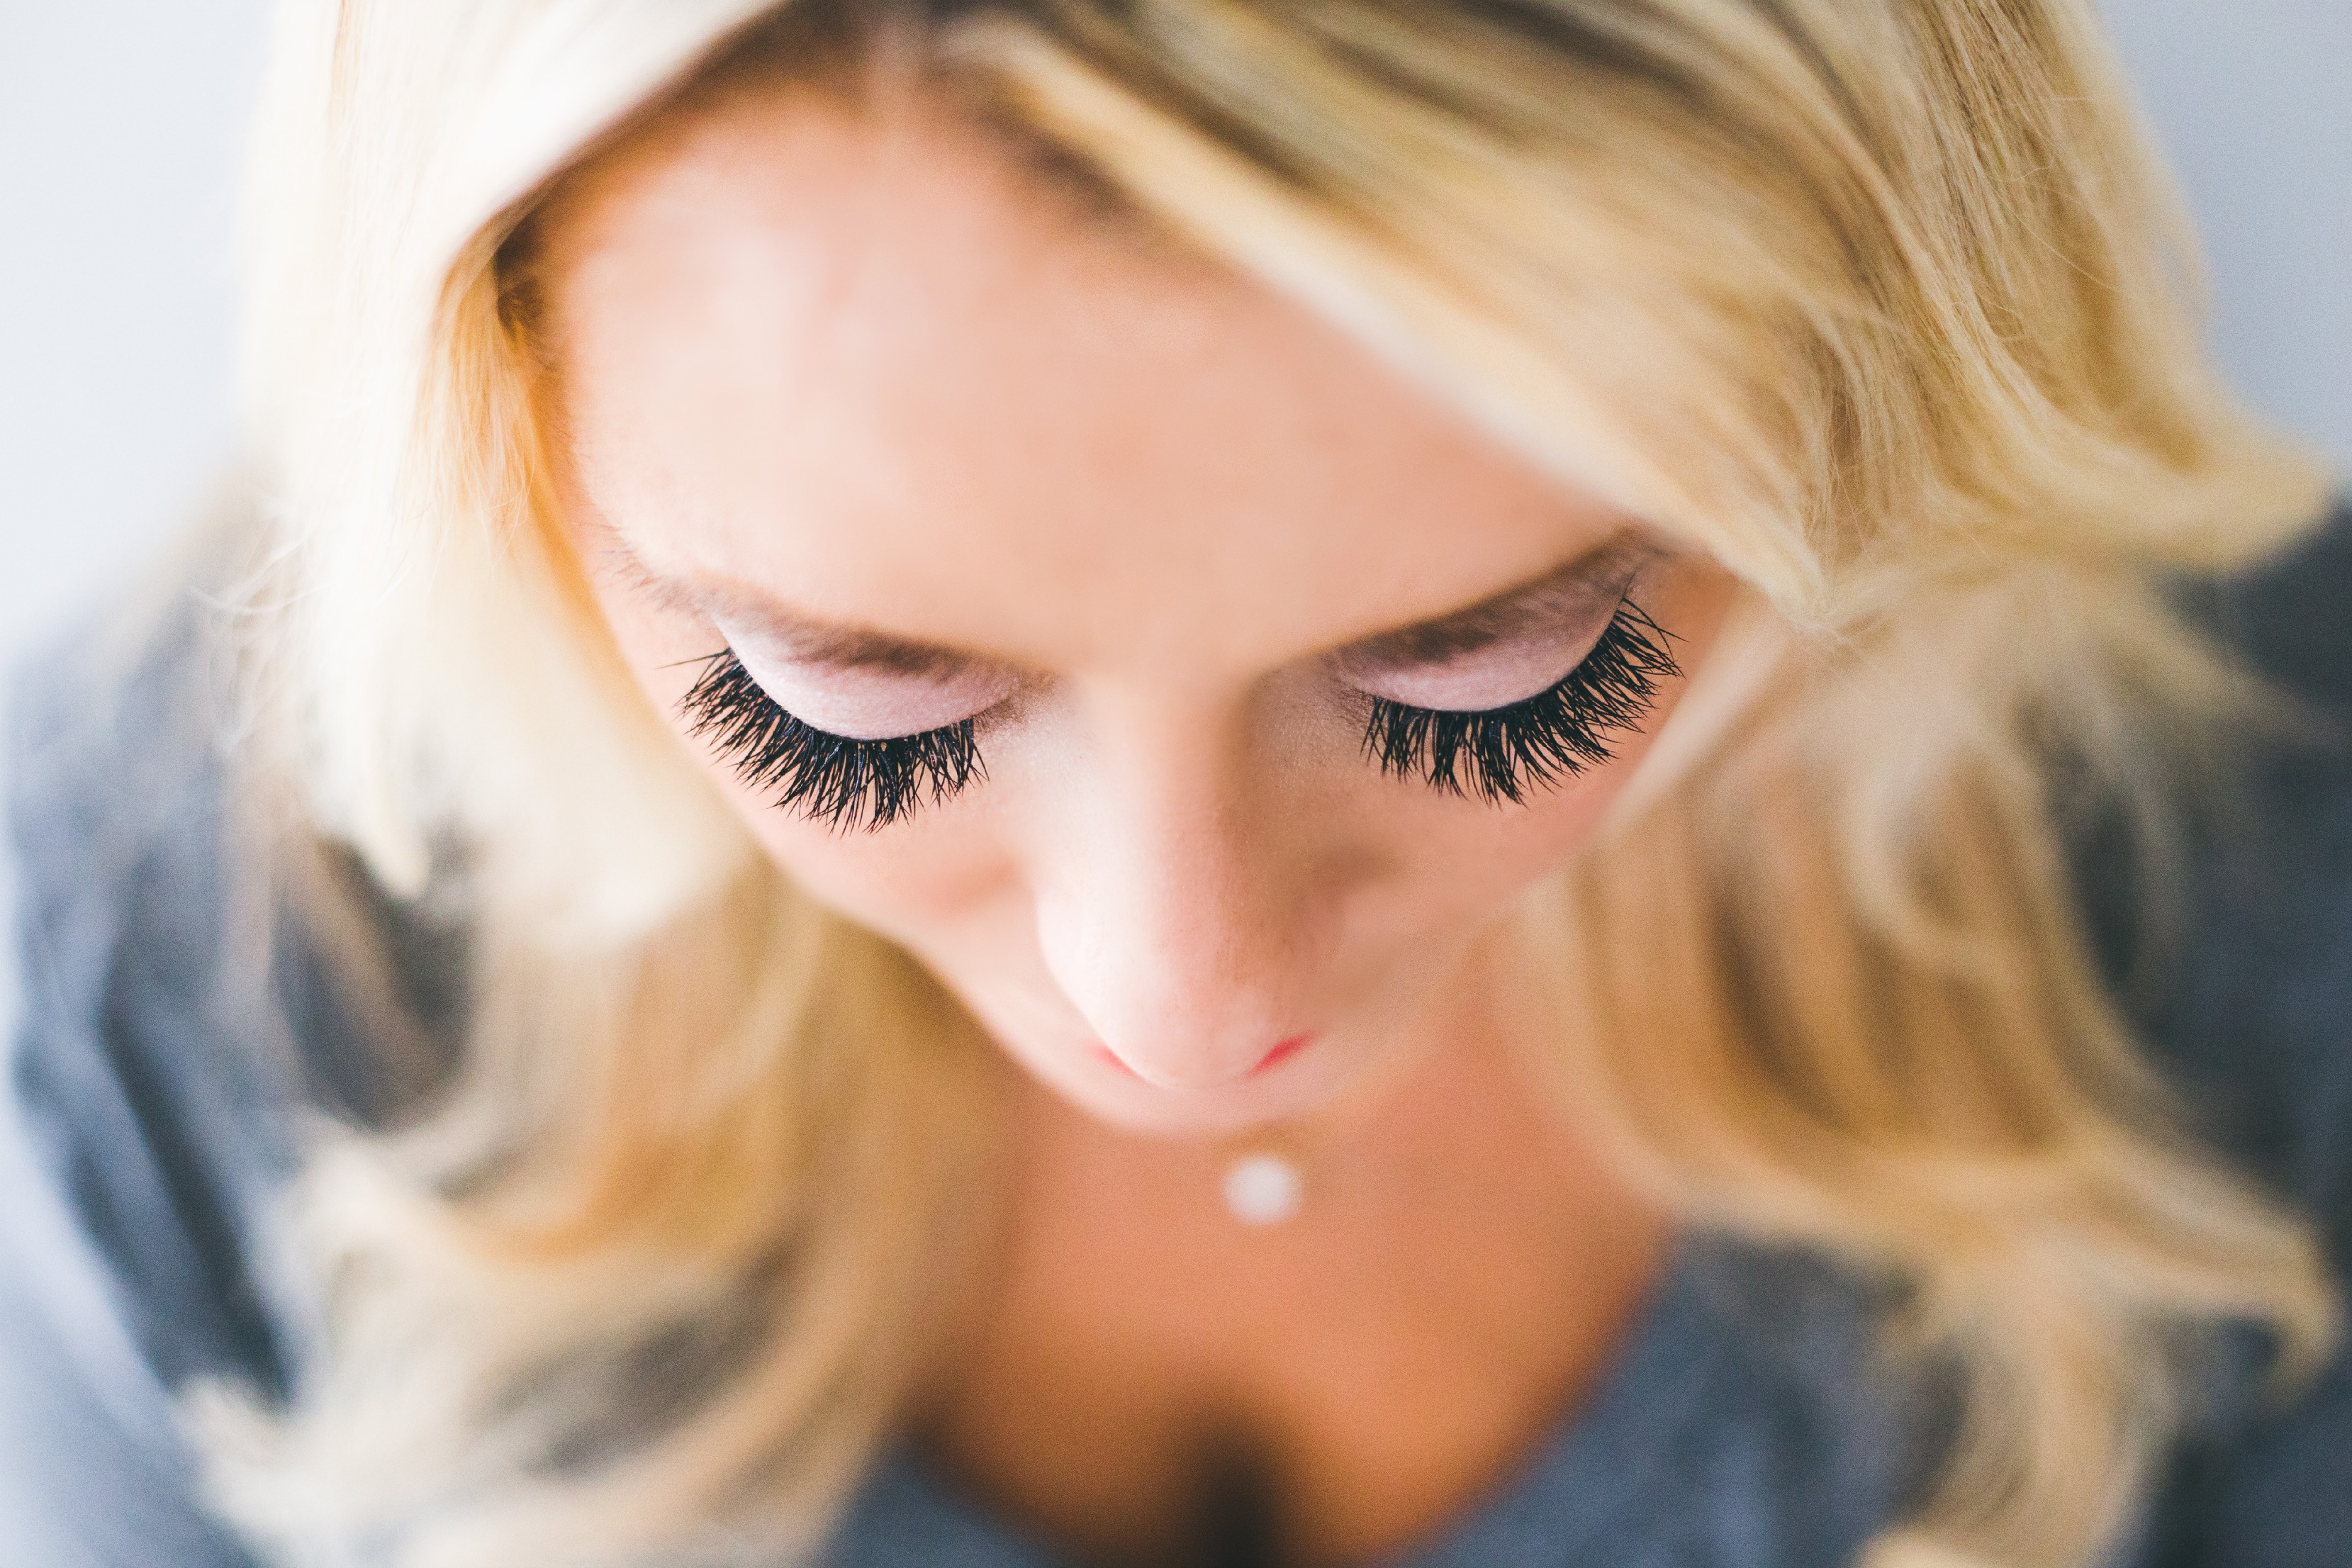 Amazing Eyelash Extensions to Show Off featured image